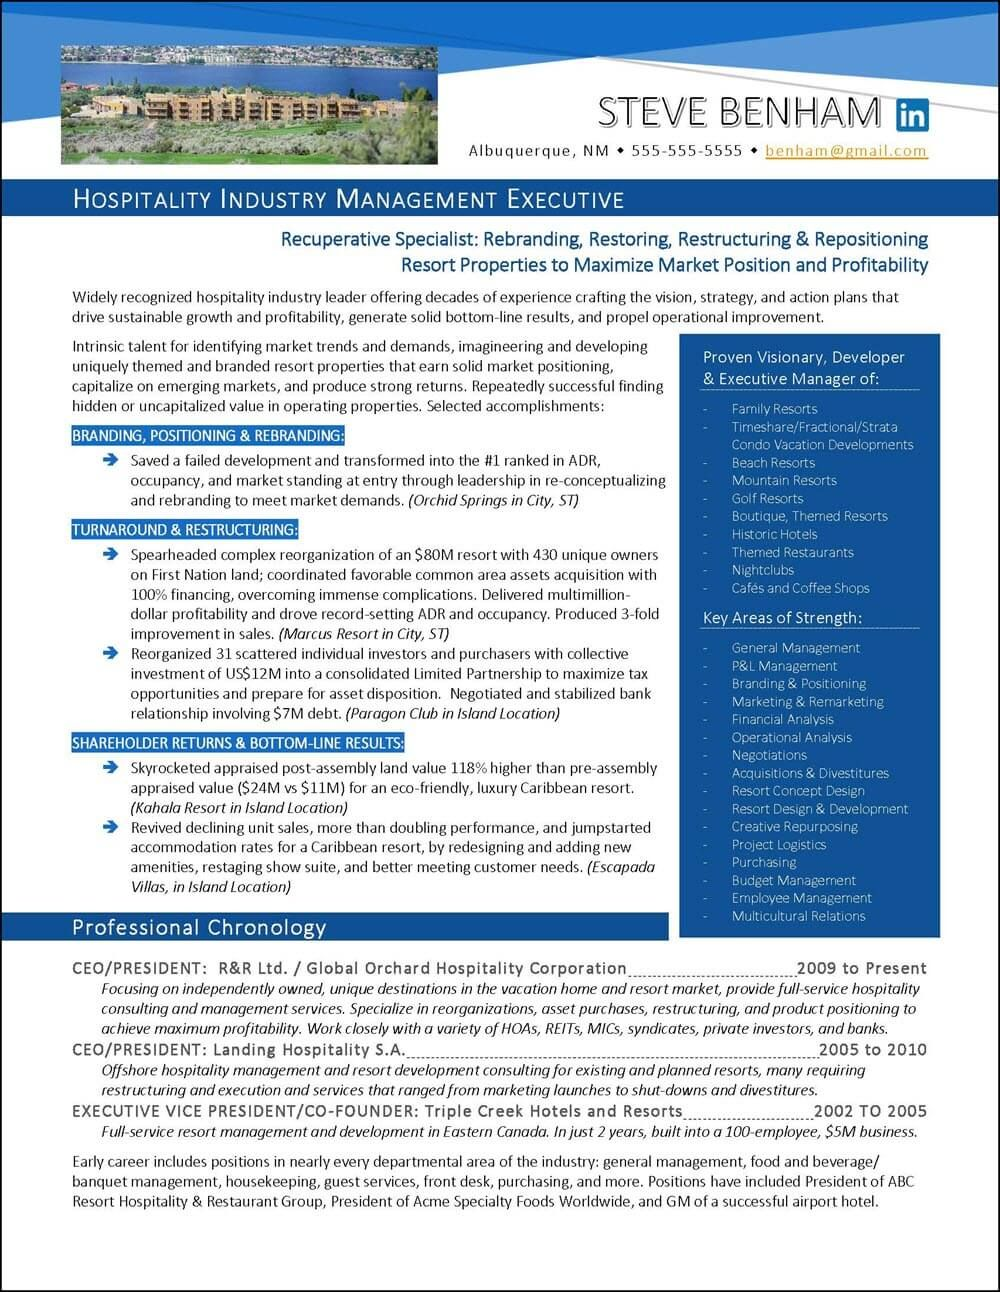 National Award-Winning Executive Resume Examples, Executive Cover Letter  Examples, Infographic Resume Examples, Executive Biography Examples, And  More